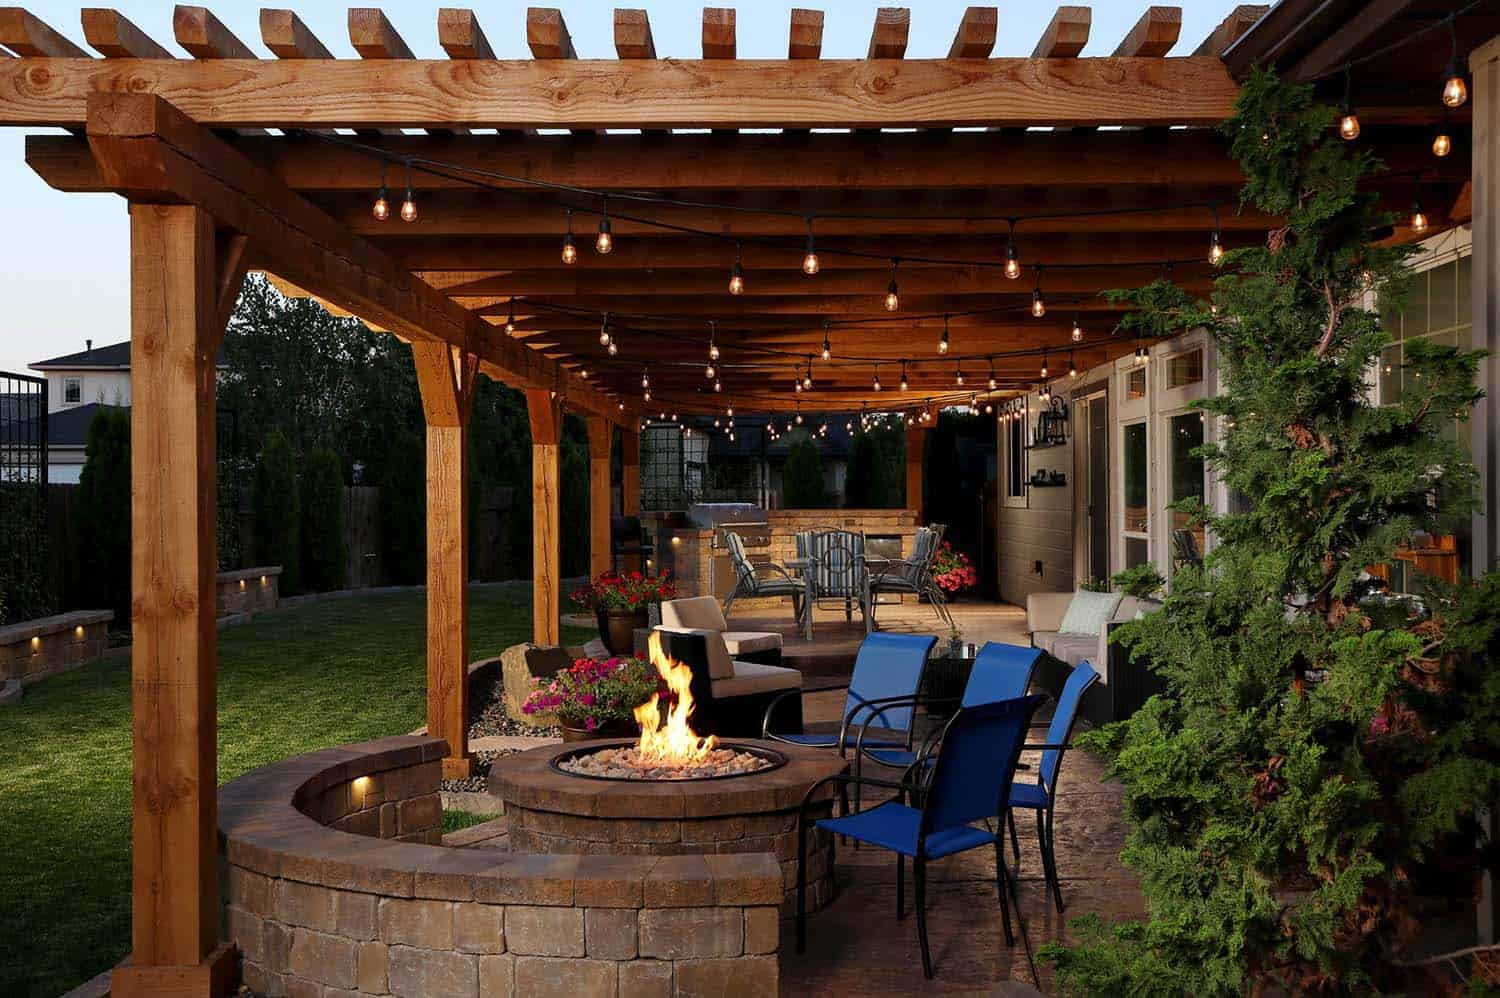 Superieur Fabulous Outdoor Patio Ideas 11 1 Kindesign